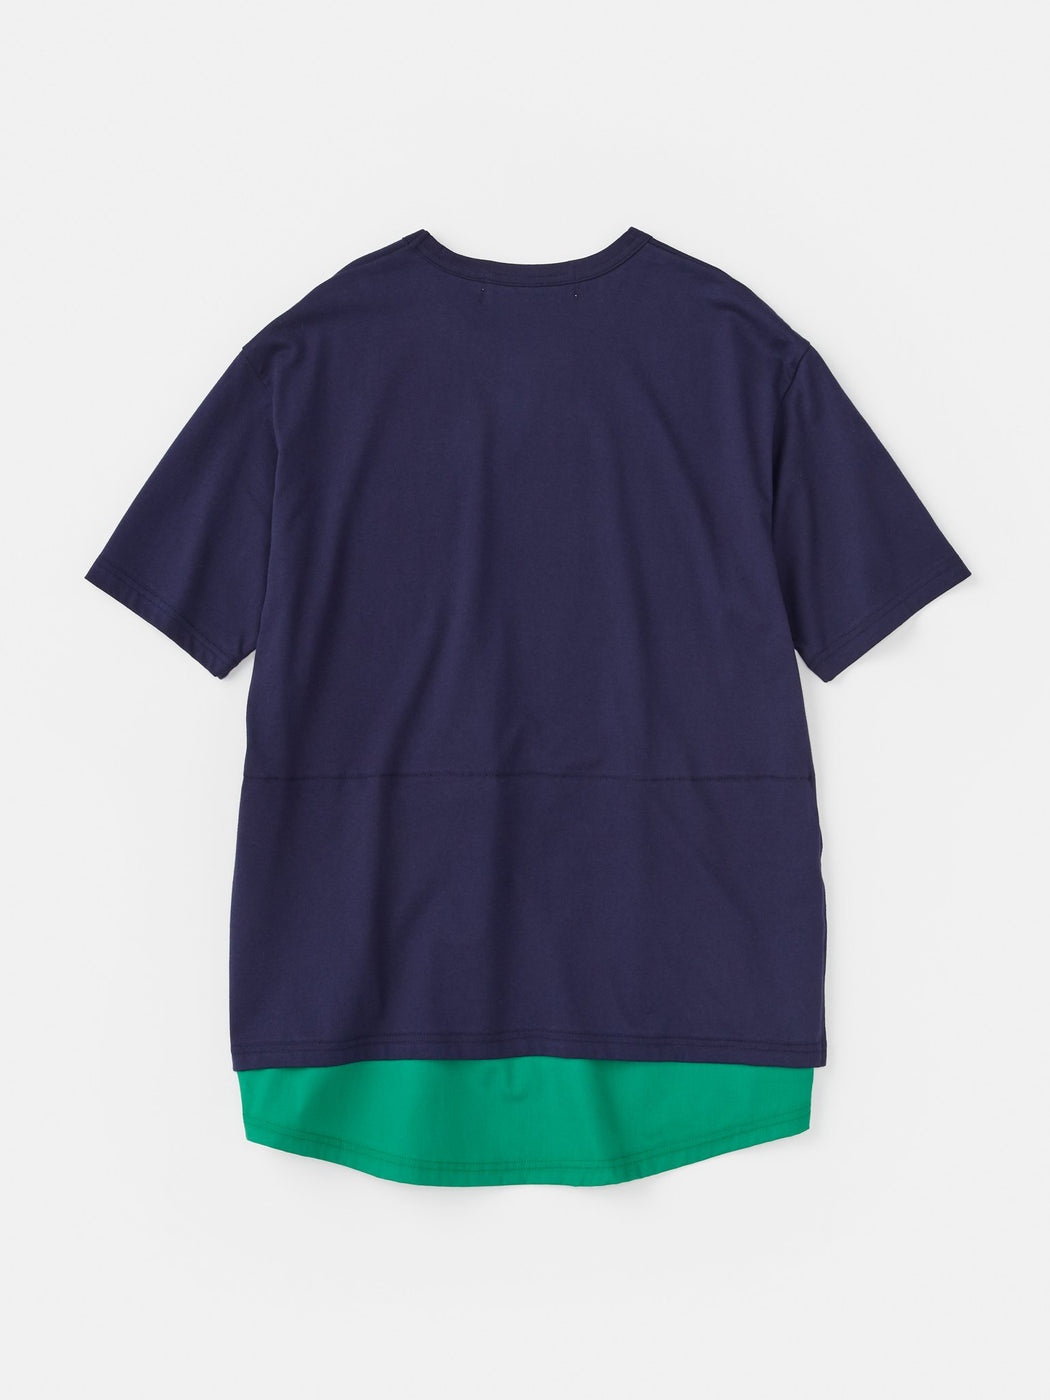 ALOYE Shirt Fabrics Short Sleeve Layerd T-shirt Navy-Green